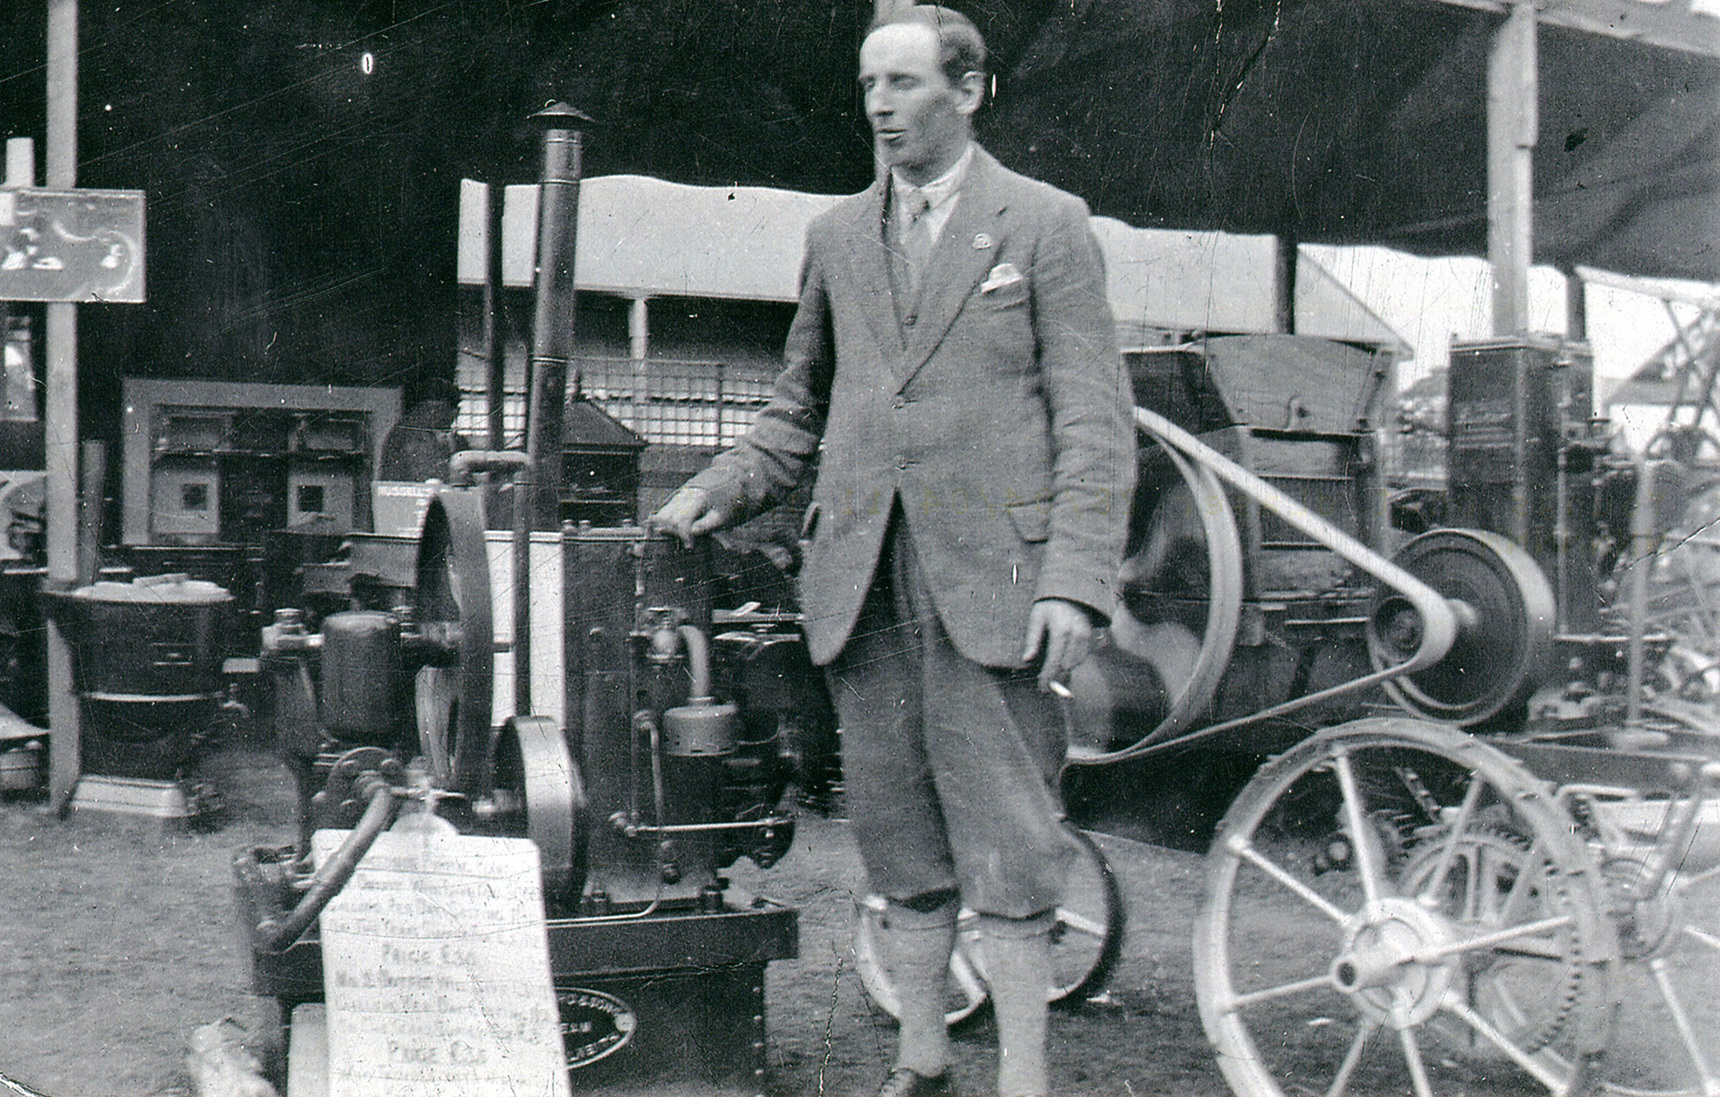 Engineer Standing With Display Of Working Motors c.1930